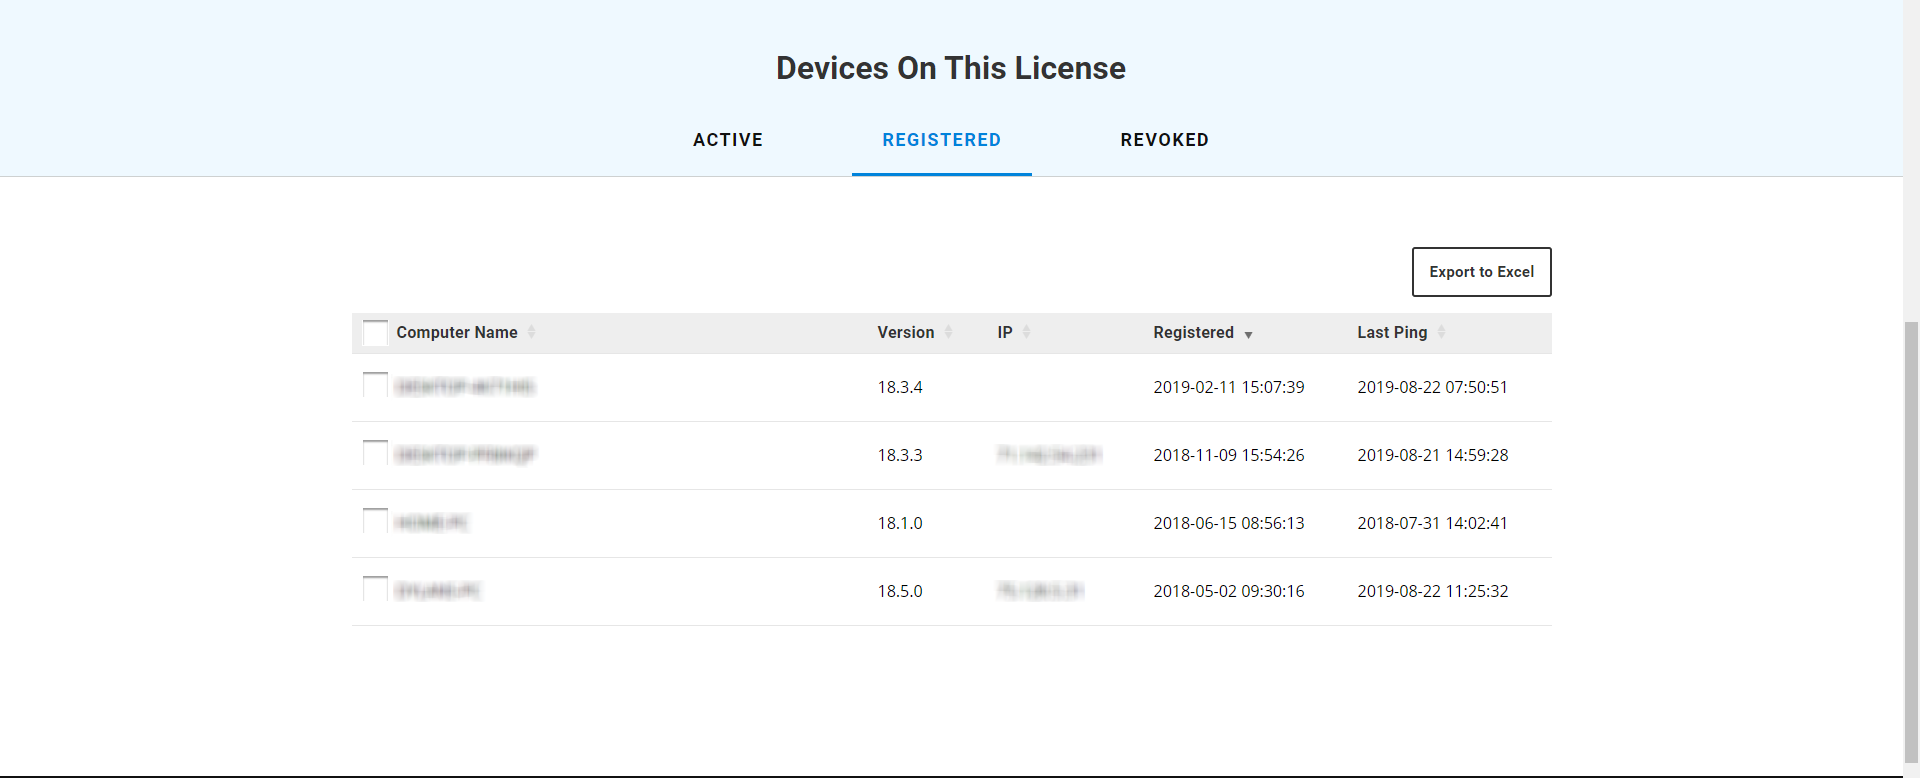 Registered devices on open license in Bluebeam Revu